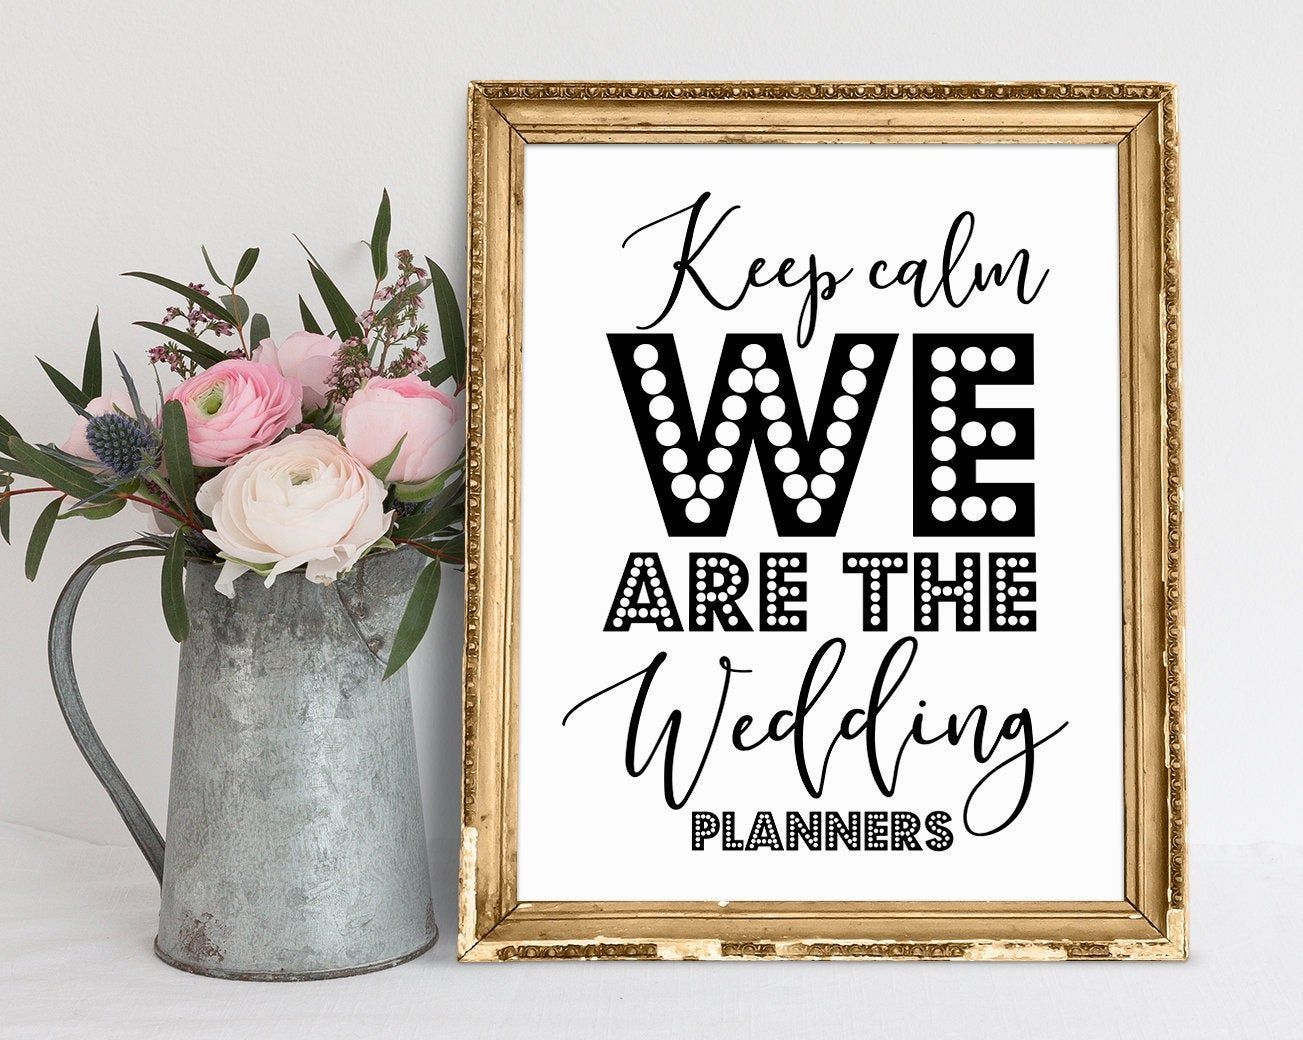 Pin By Maria Lahoz On Melenalahoz Gmail Com Wedding Planner Quotes Printable Wedding Sign Wedding Planner